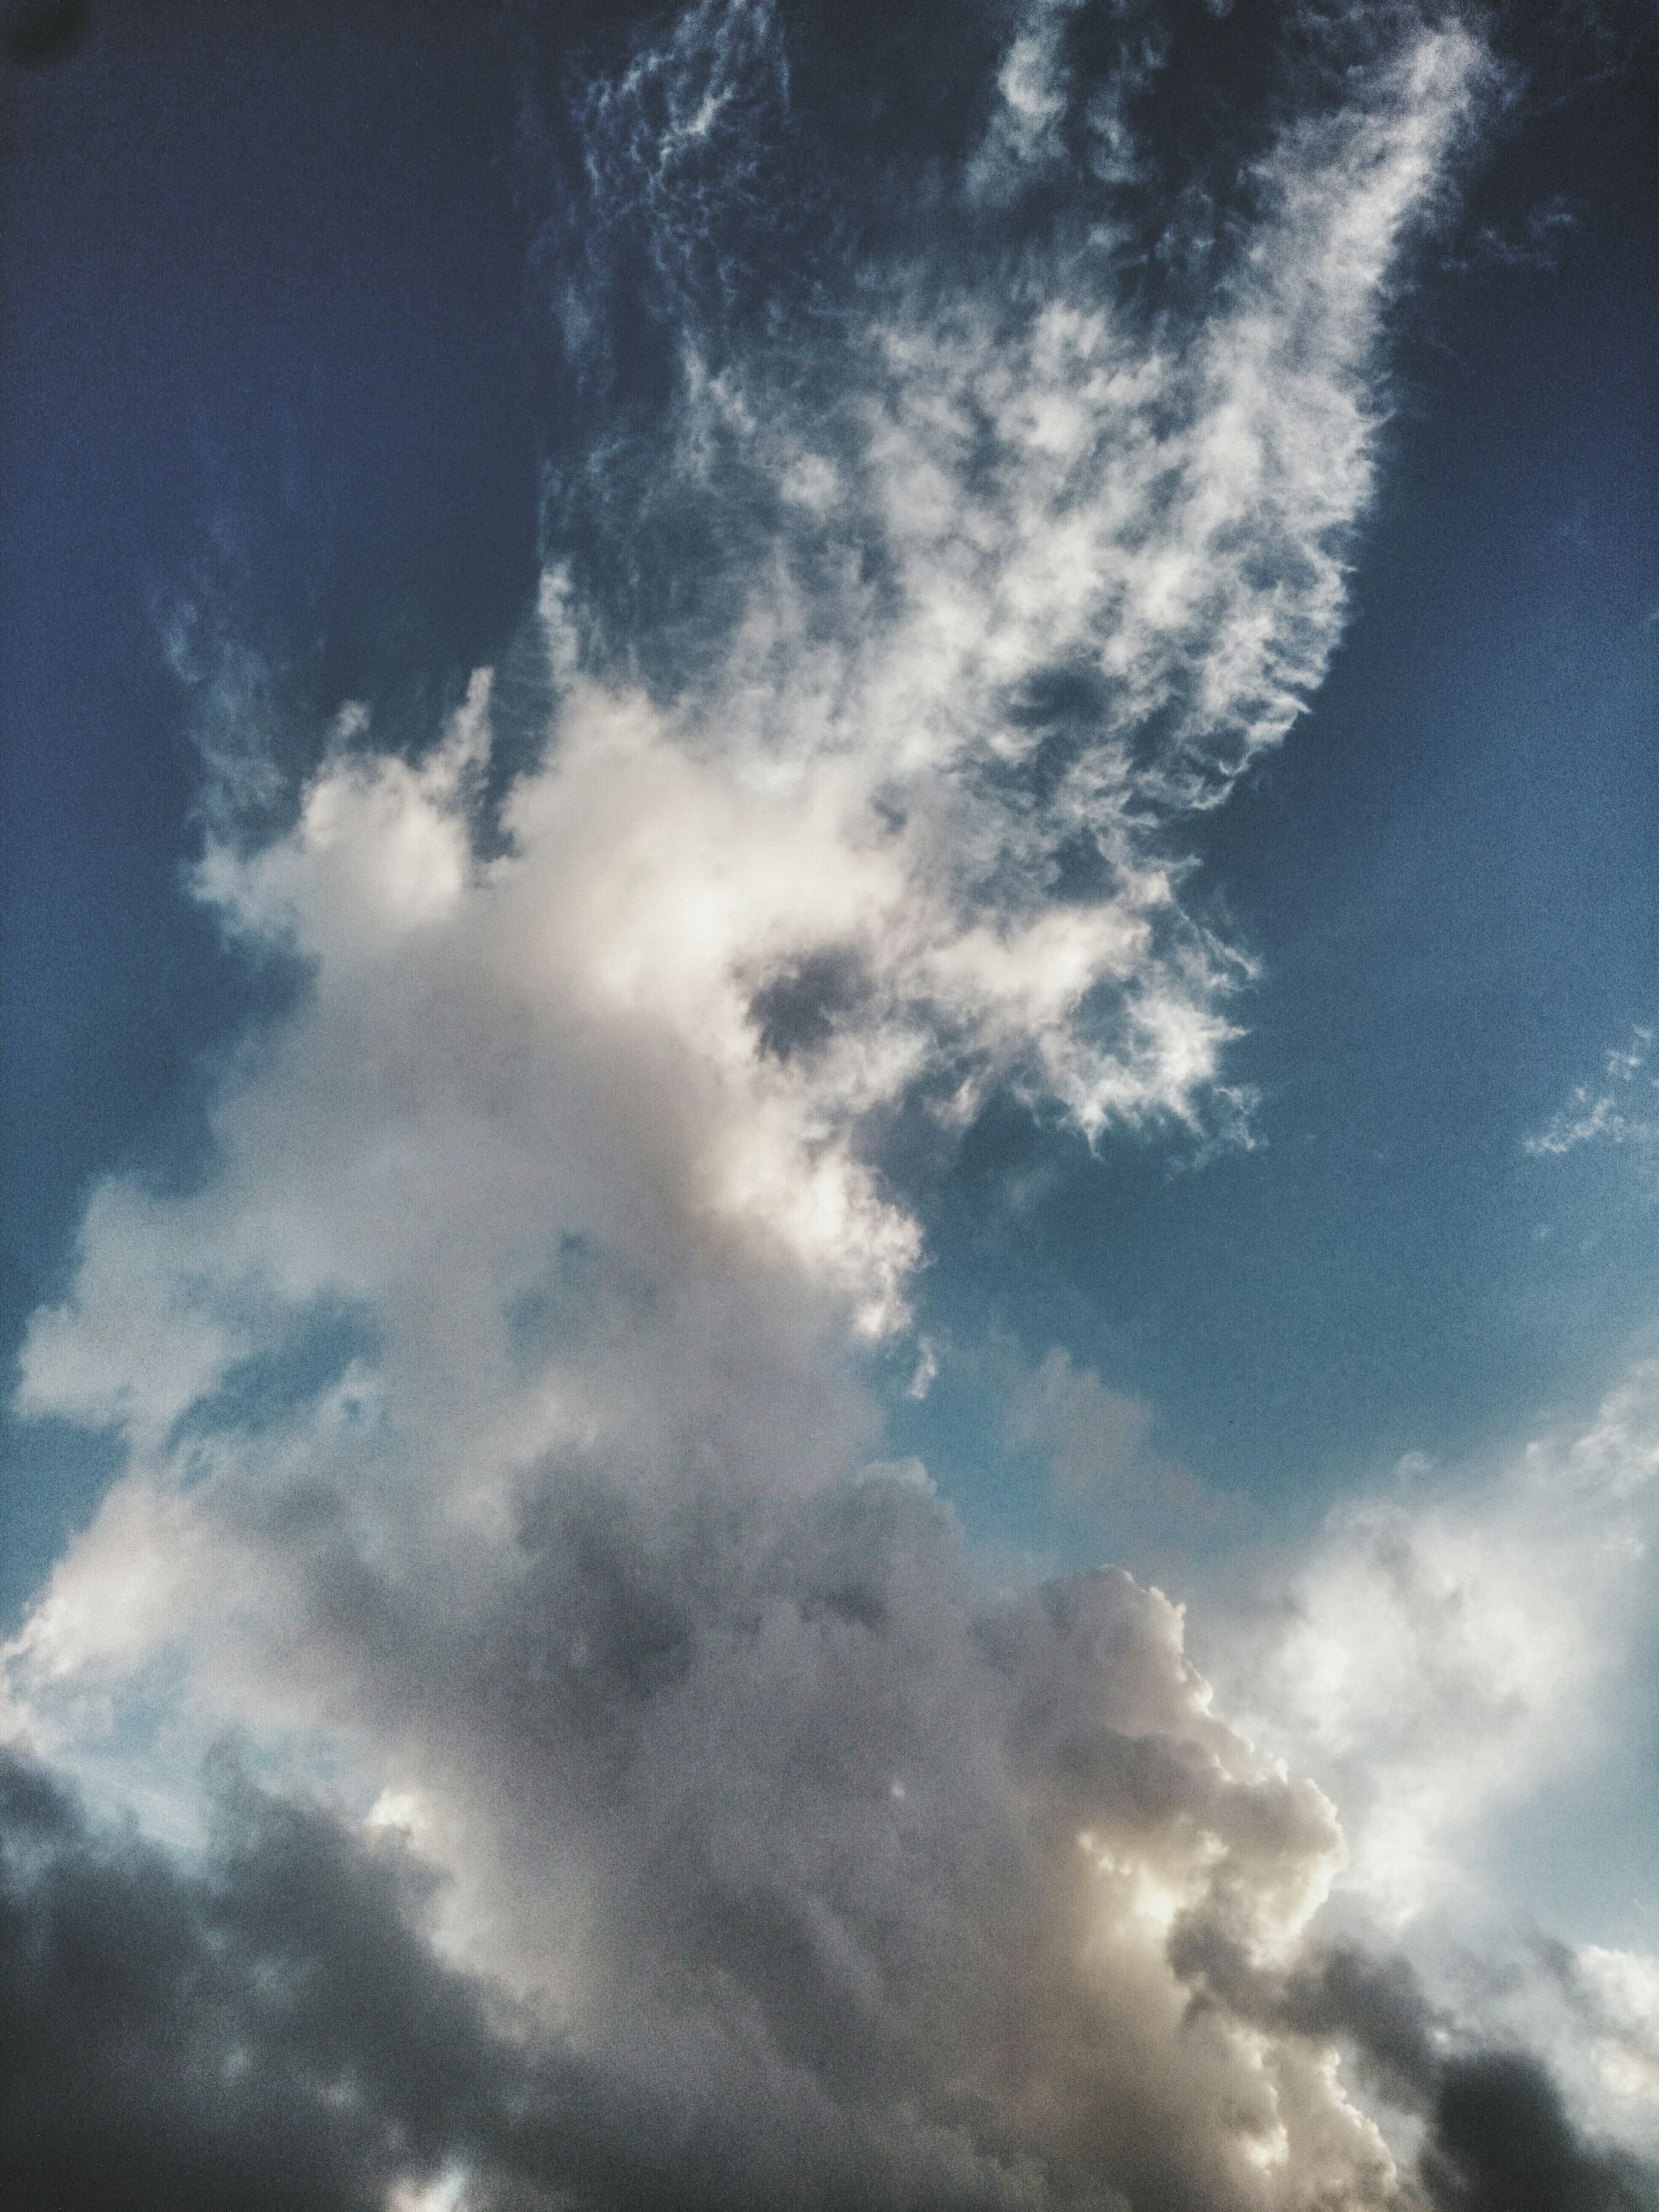 low angle view, sky, cloud - sky, sky only, beauty in nature, cloudy, tranquility, scenics, nature, cloudscape, blue, backgrounds, tranquil scene, cloud, full frame, weather, idyllic, outdoors, no people, majestic